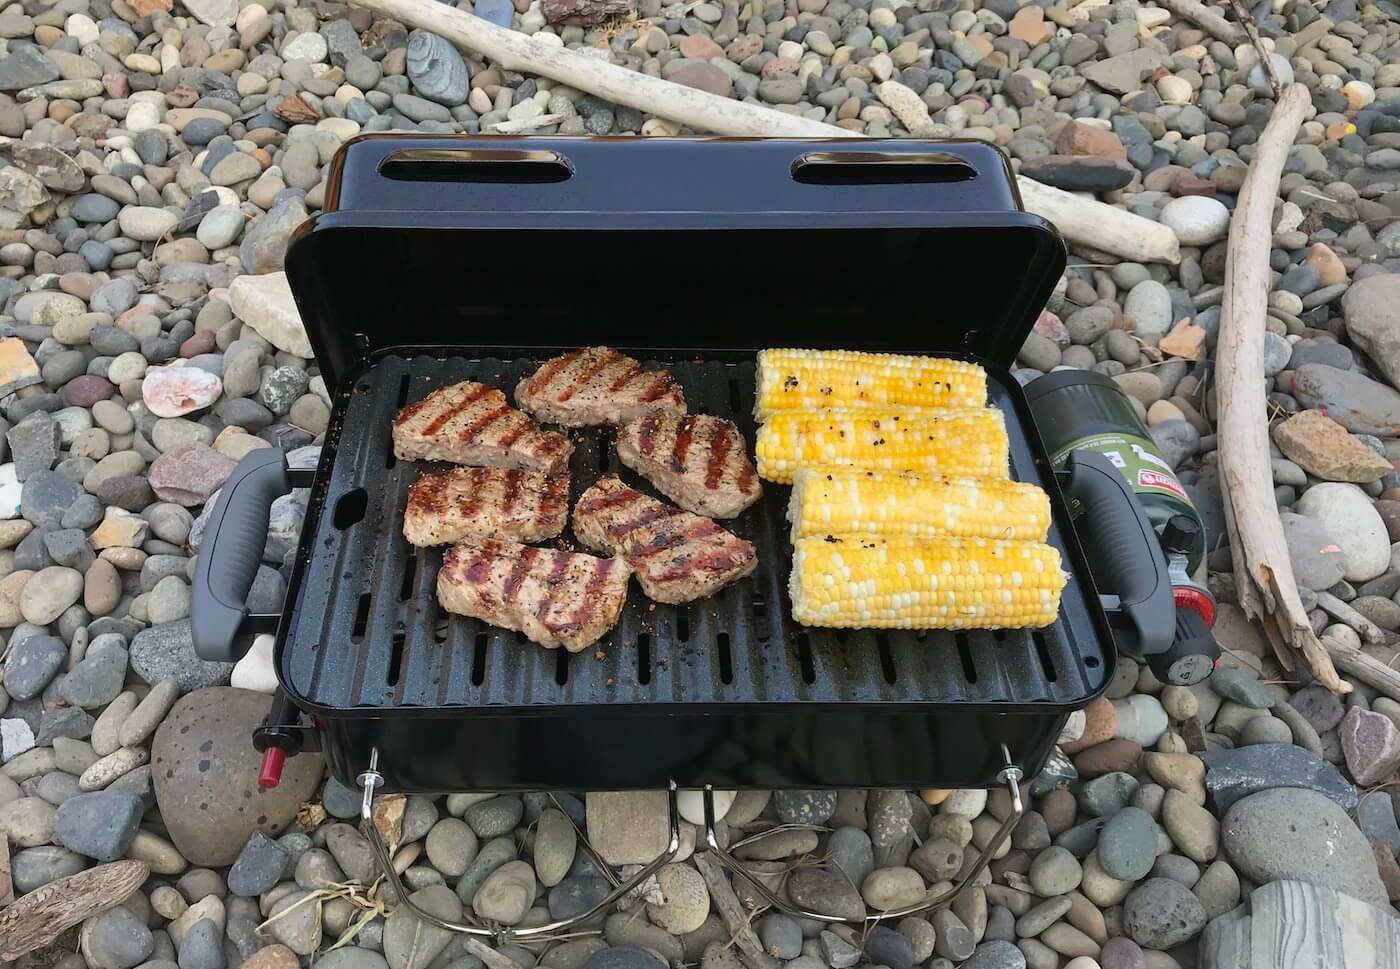 weber go anywhere gas grill review man makes fire. Black Bedroom Furniture Sets. Home Design Ideas